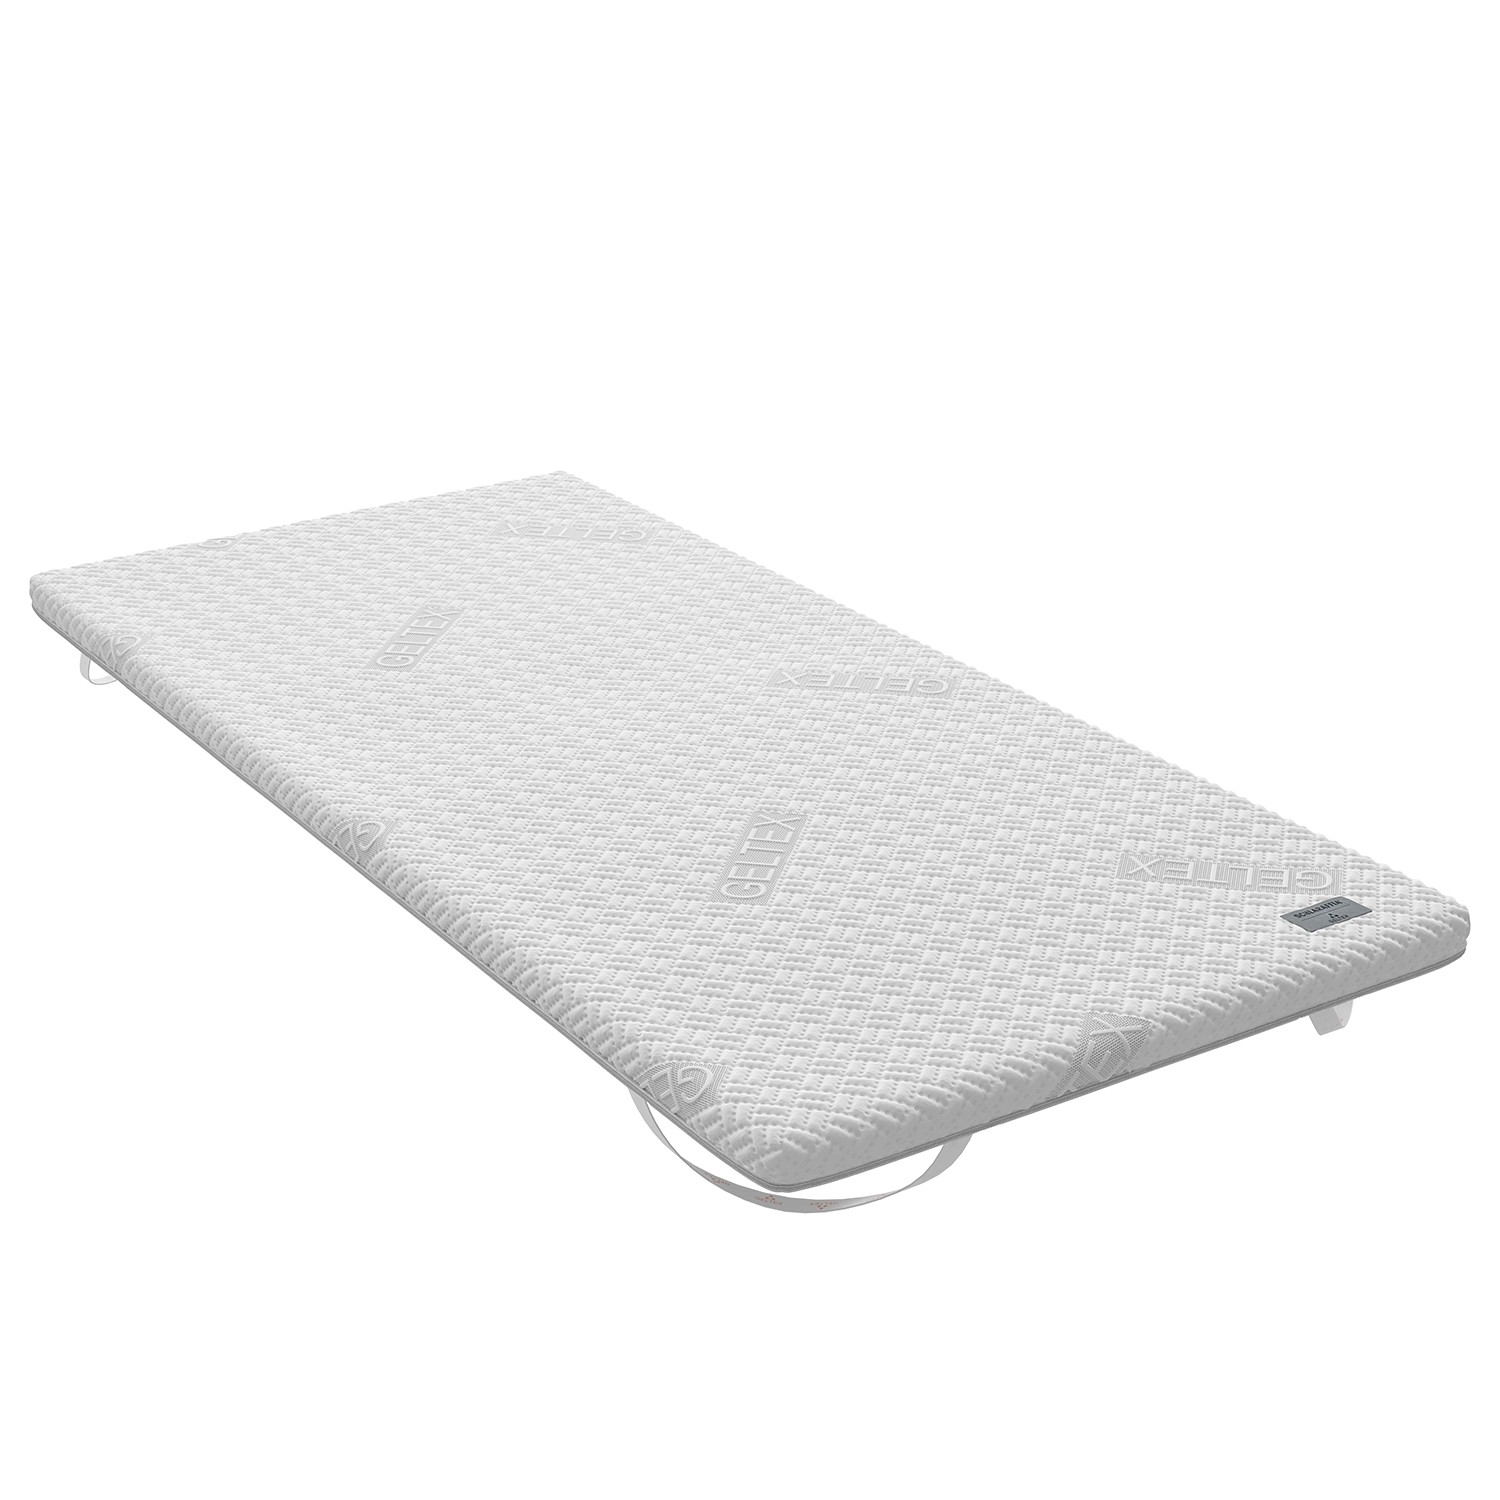 Surmatelas gel Roll'n'Sleep